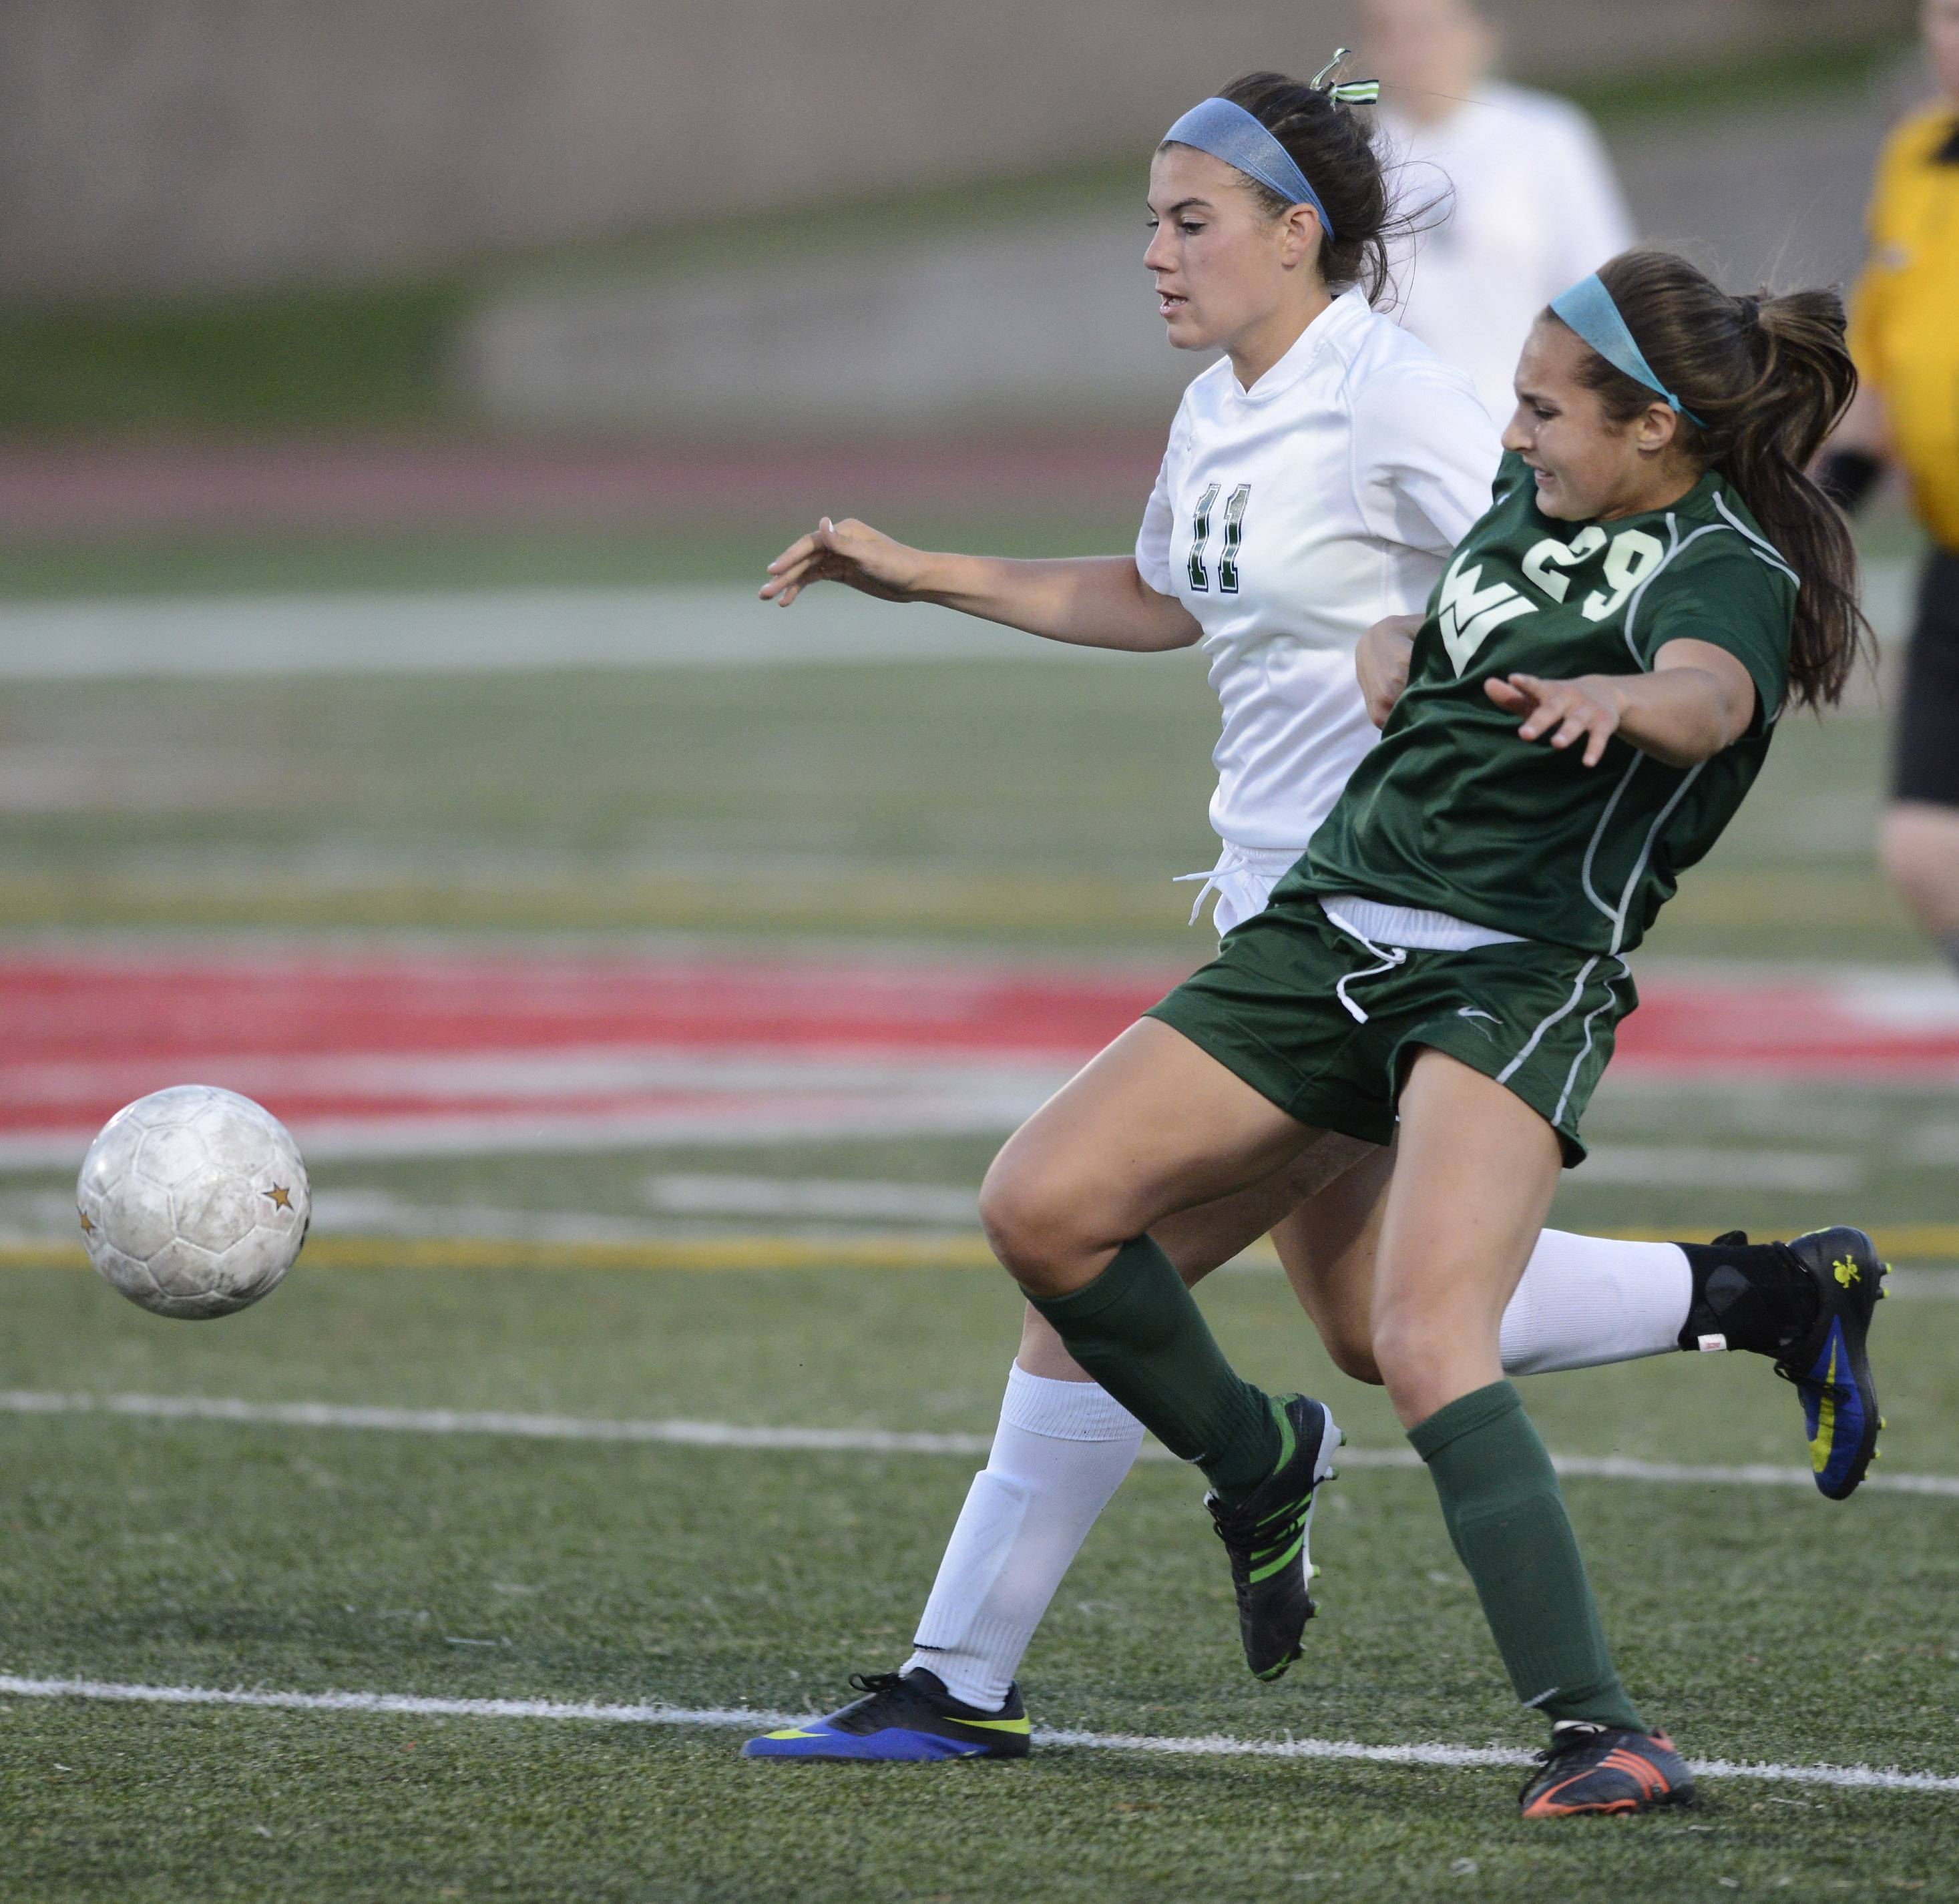 New Trier's Alex Bukovac, left, and Waubonsie Valley's Callie Vitro pursue the ball during the girls soccer Class 3A state semifinal at North Central College in Naperville Friday.